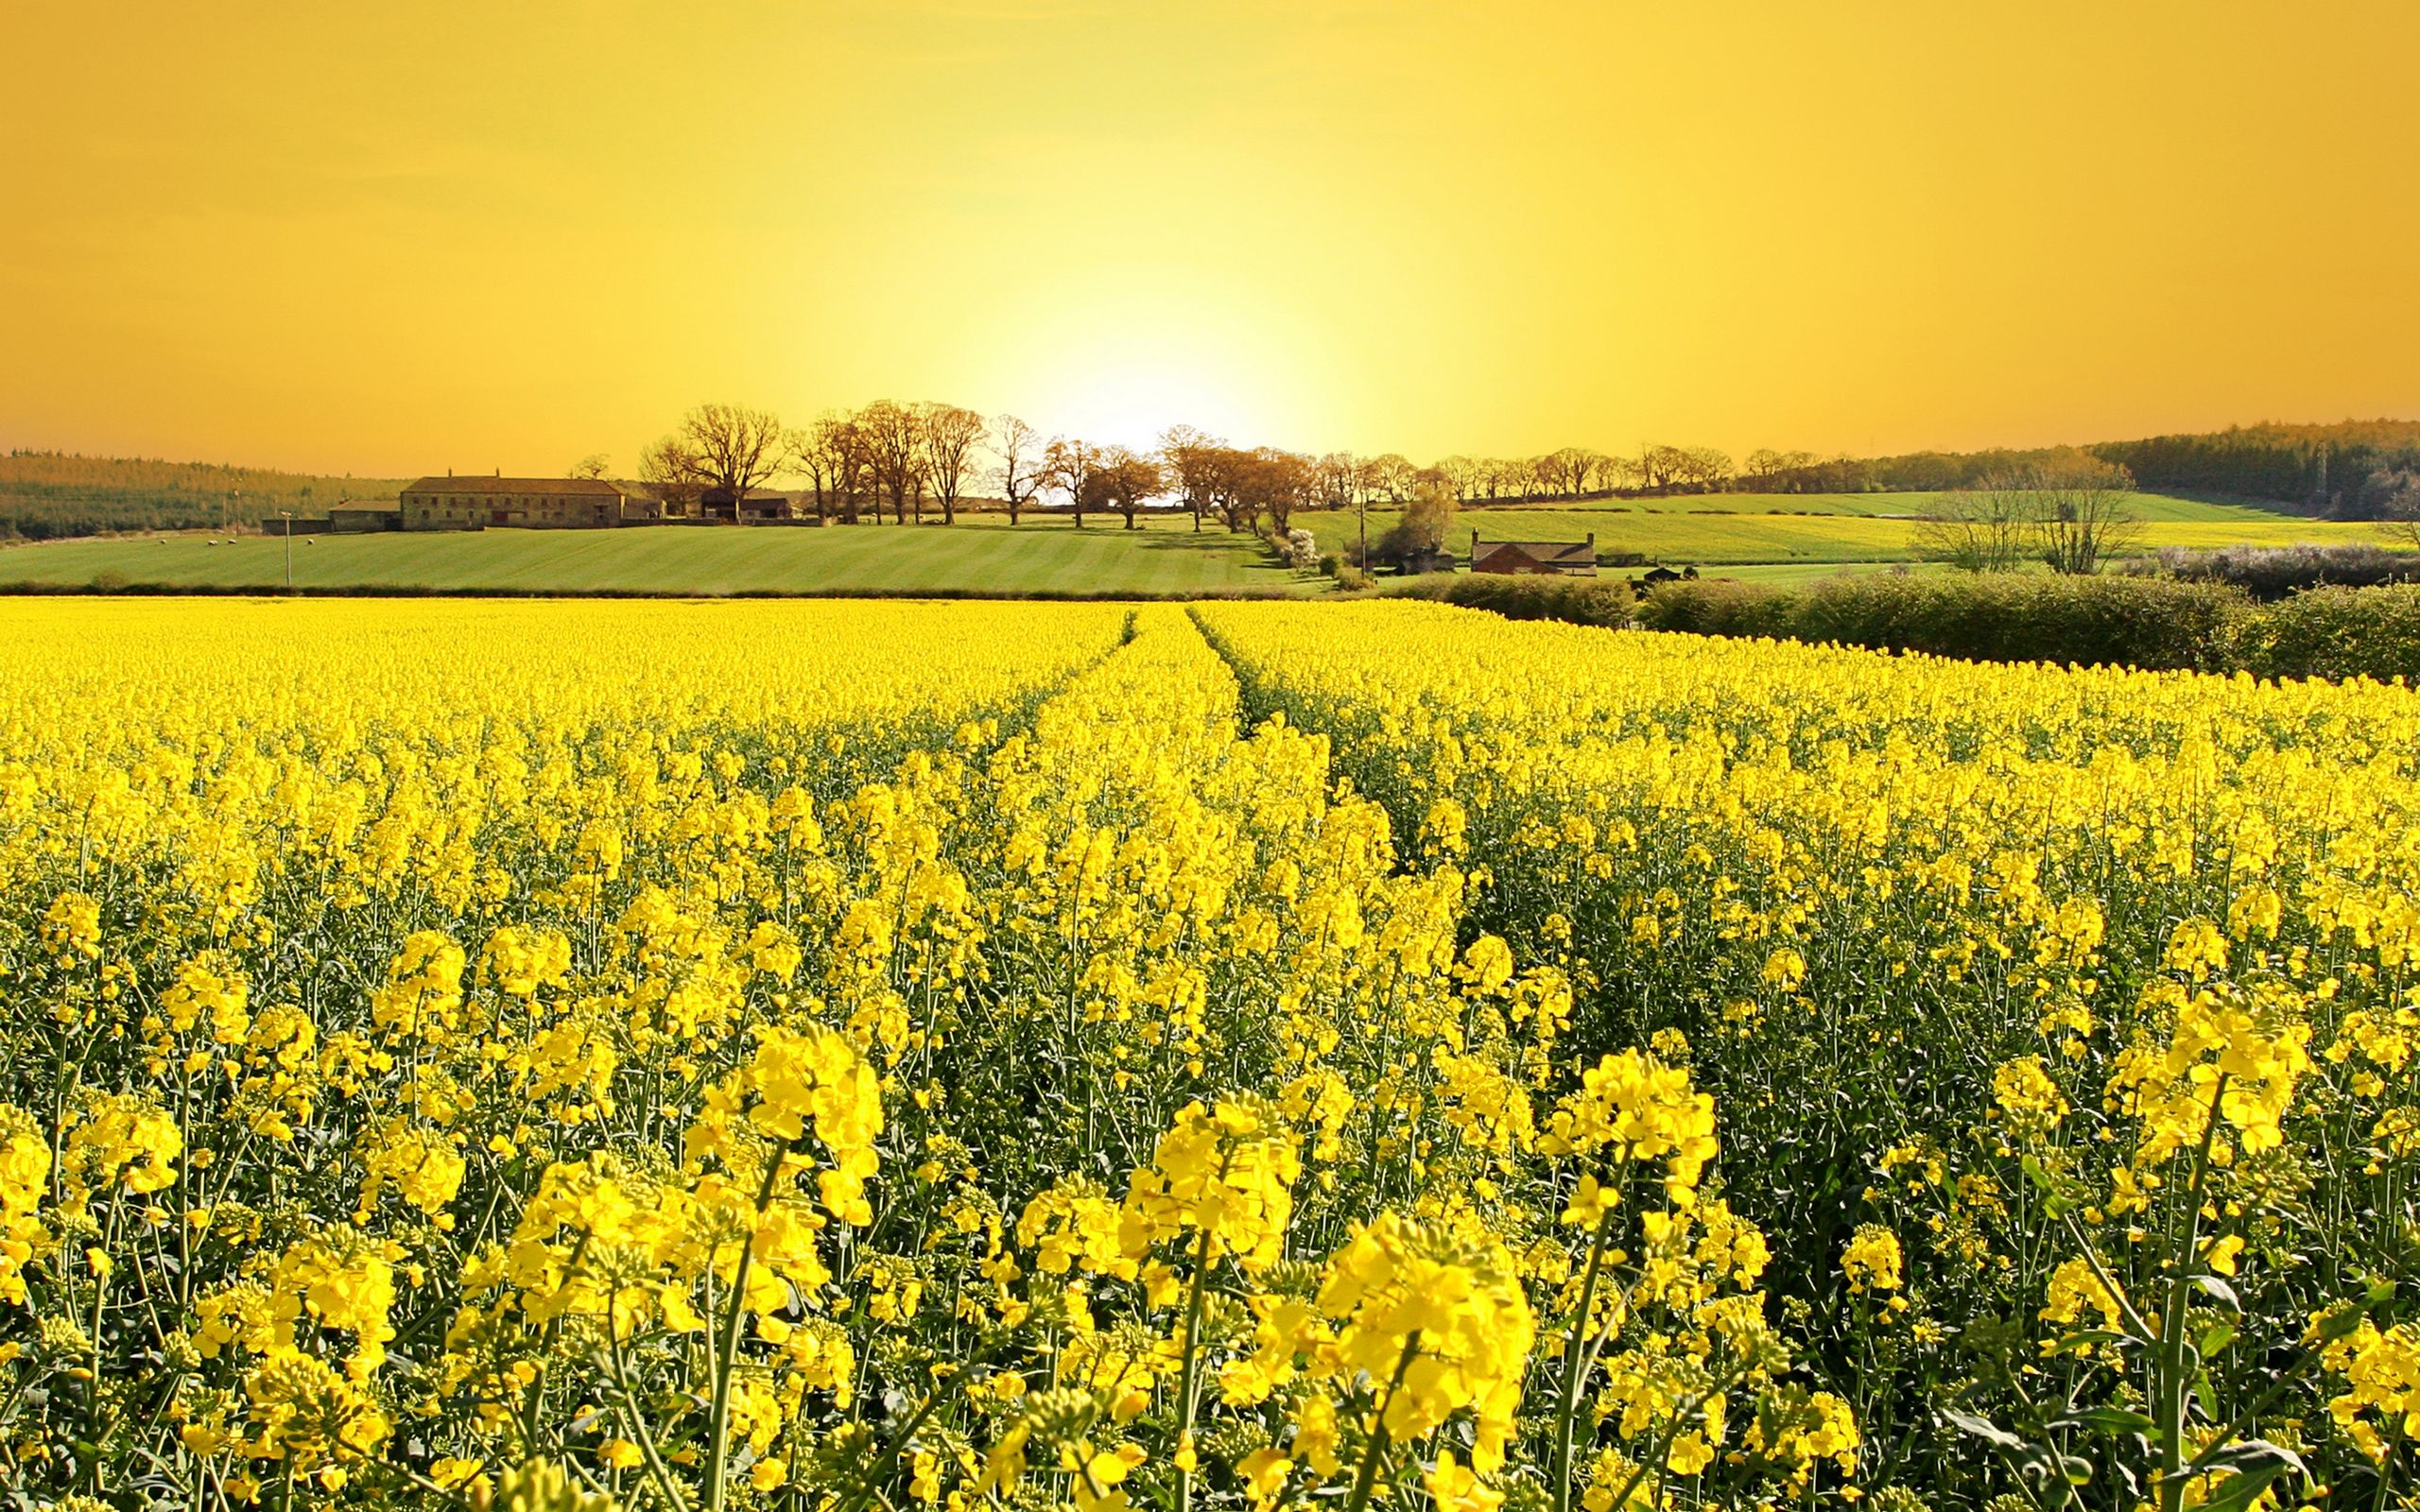 Yellow Field Field Flowers Grass House Landscape Nature Trees